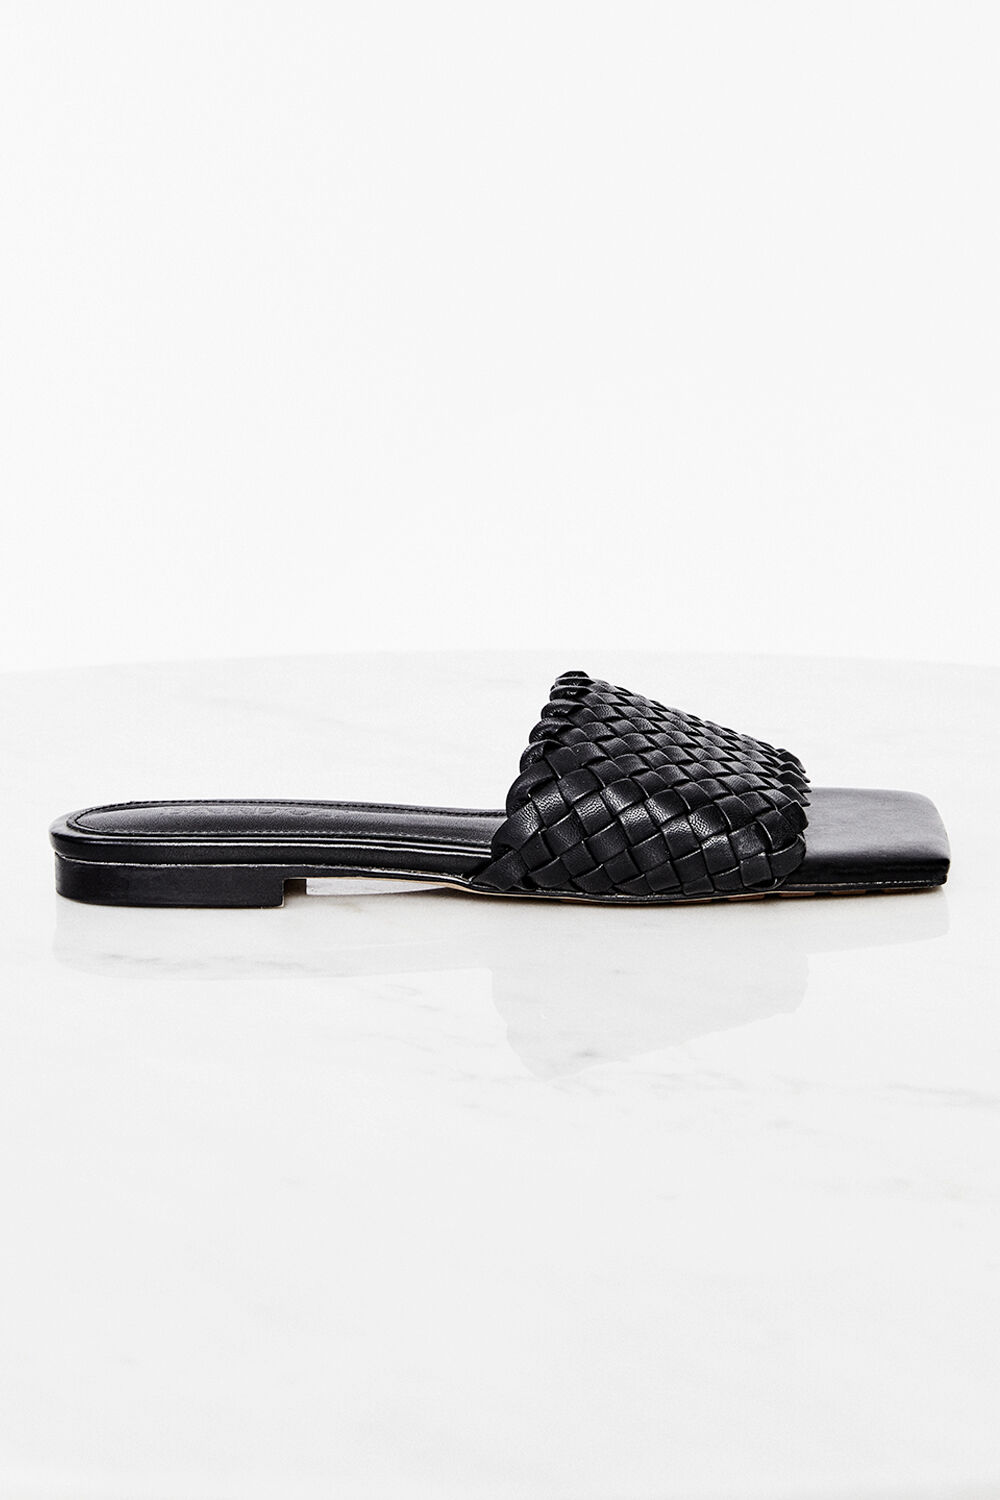 THE WEAVE SANDAL in colour METEORITE